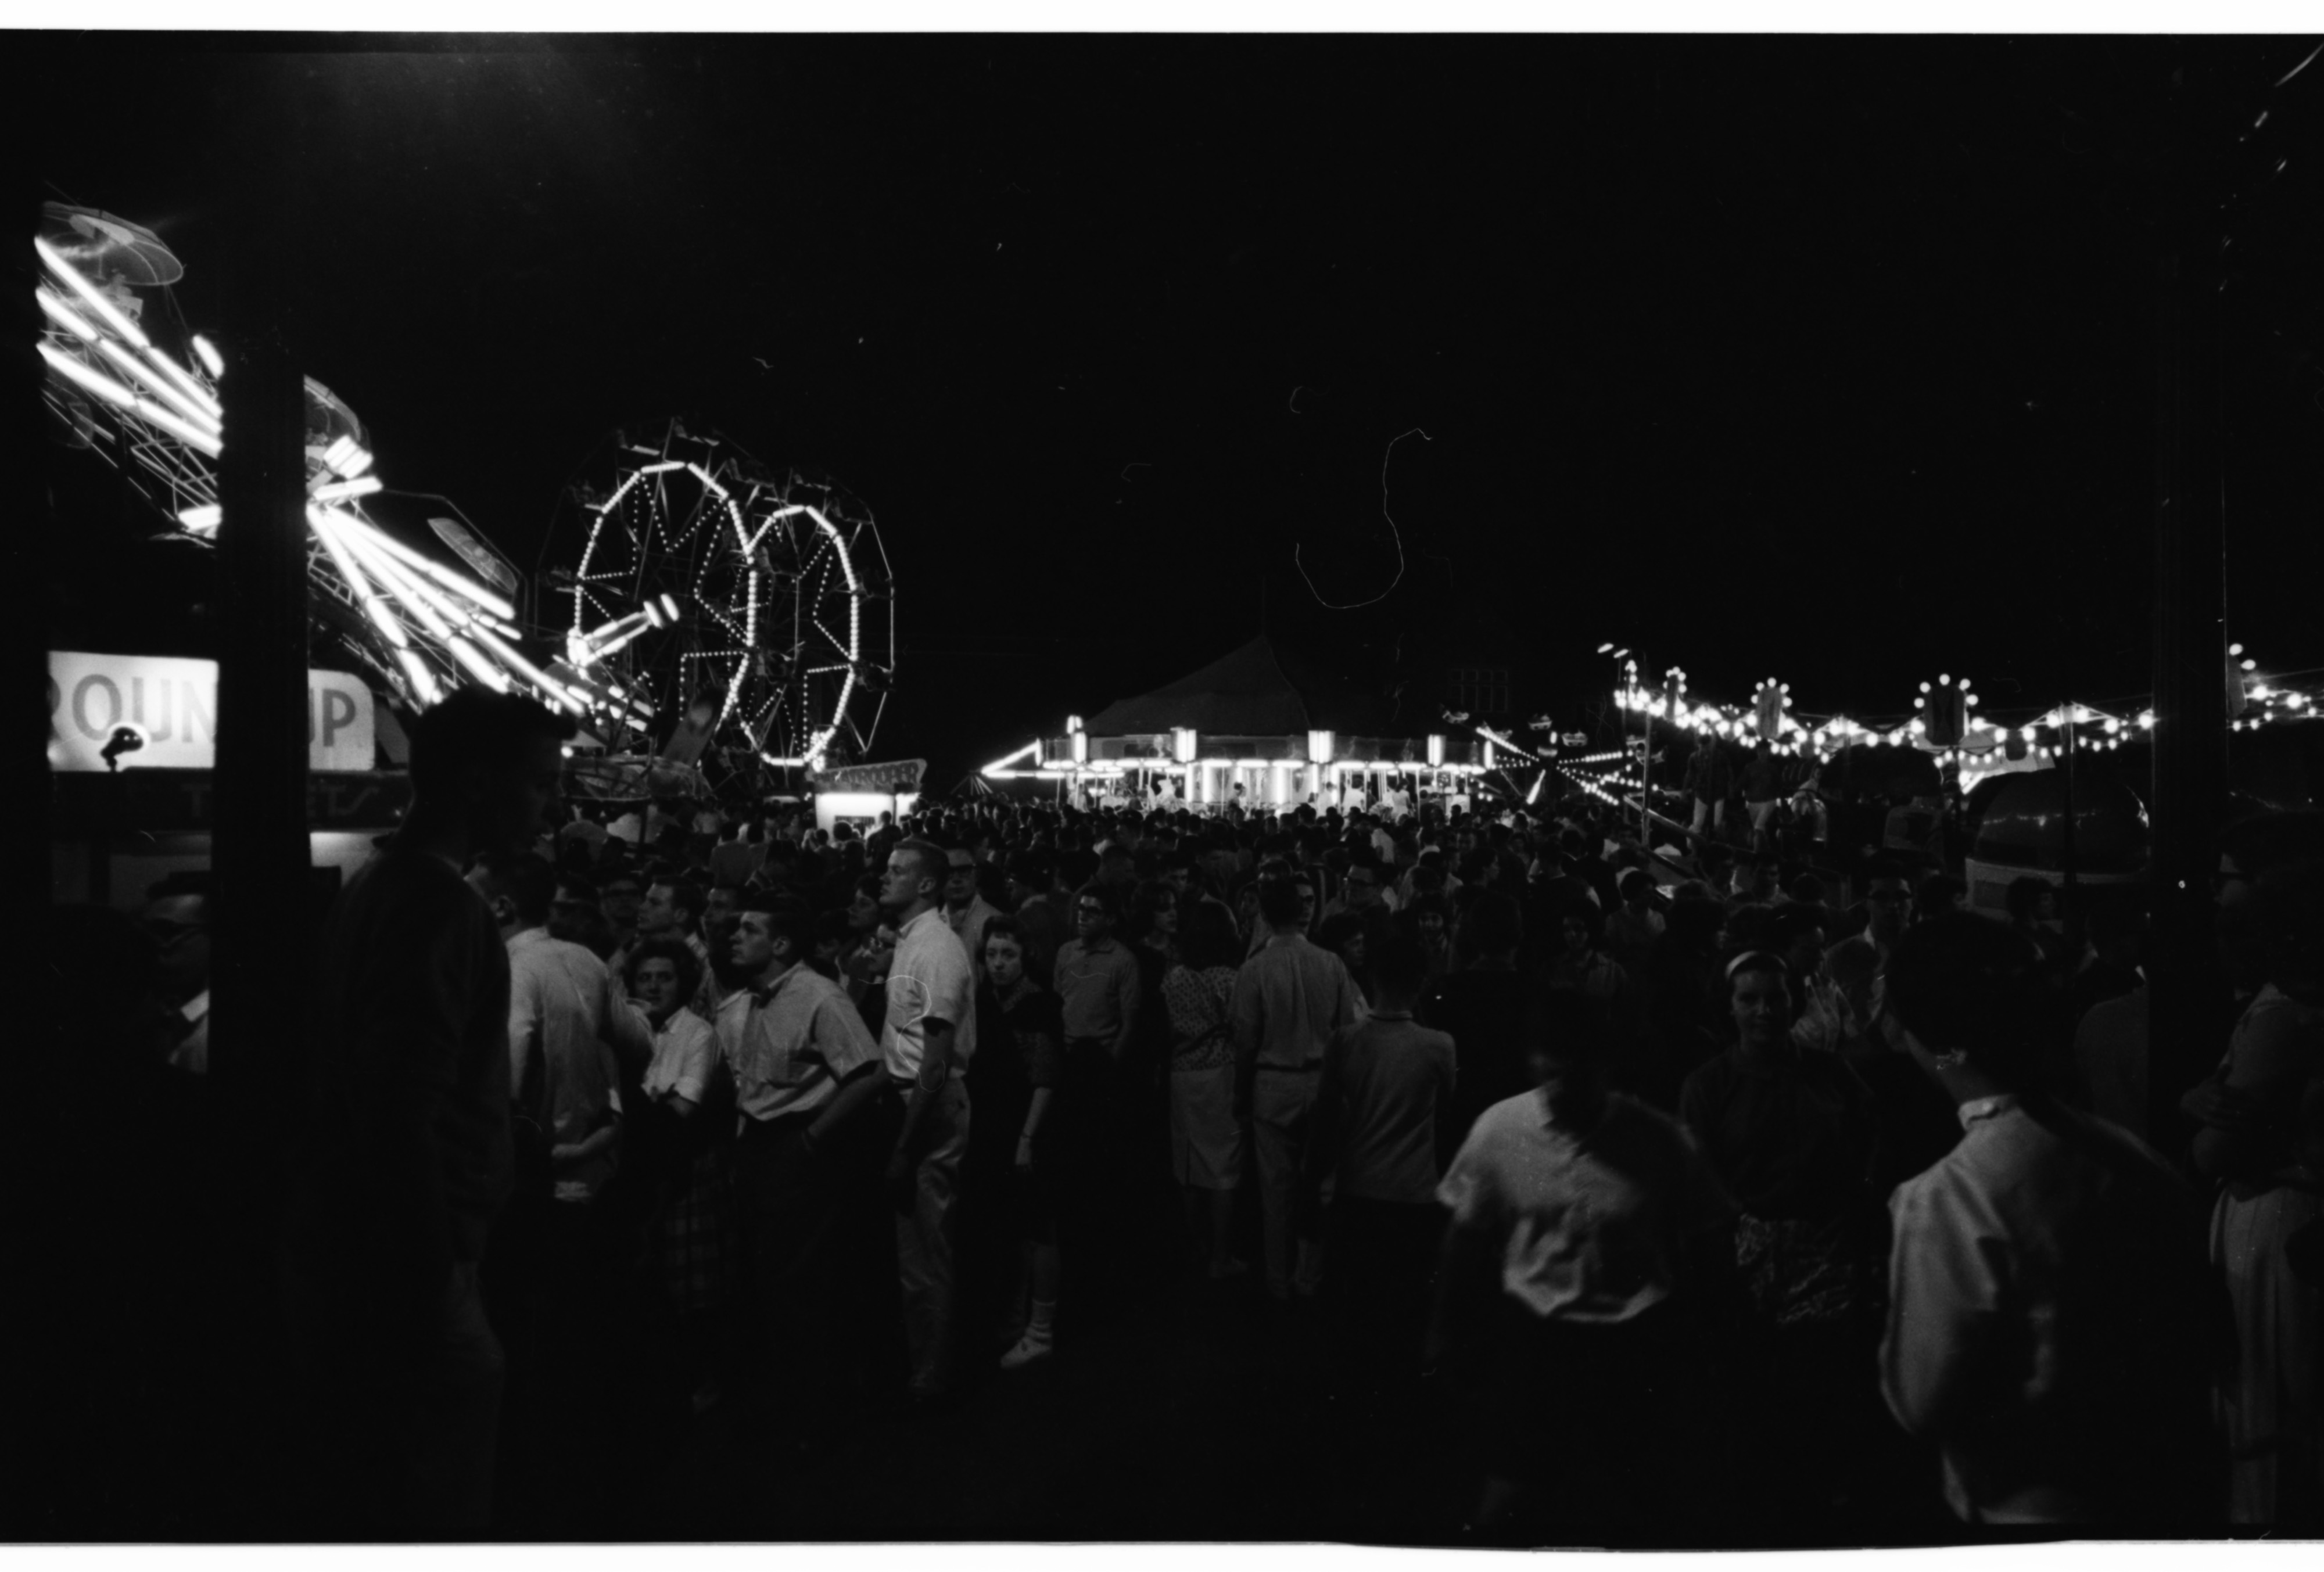 Michigras Carnival's Outdoor Midway near Yost Field House, April 1962 image